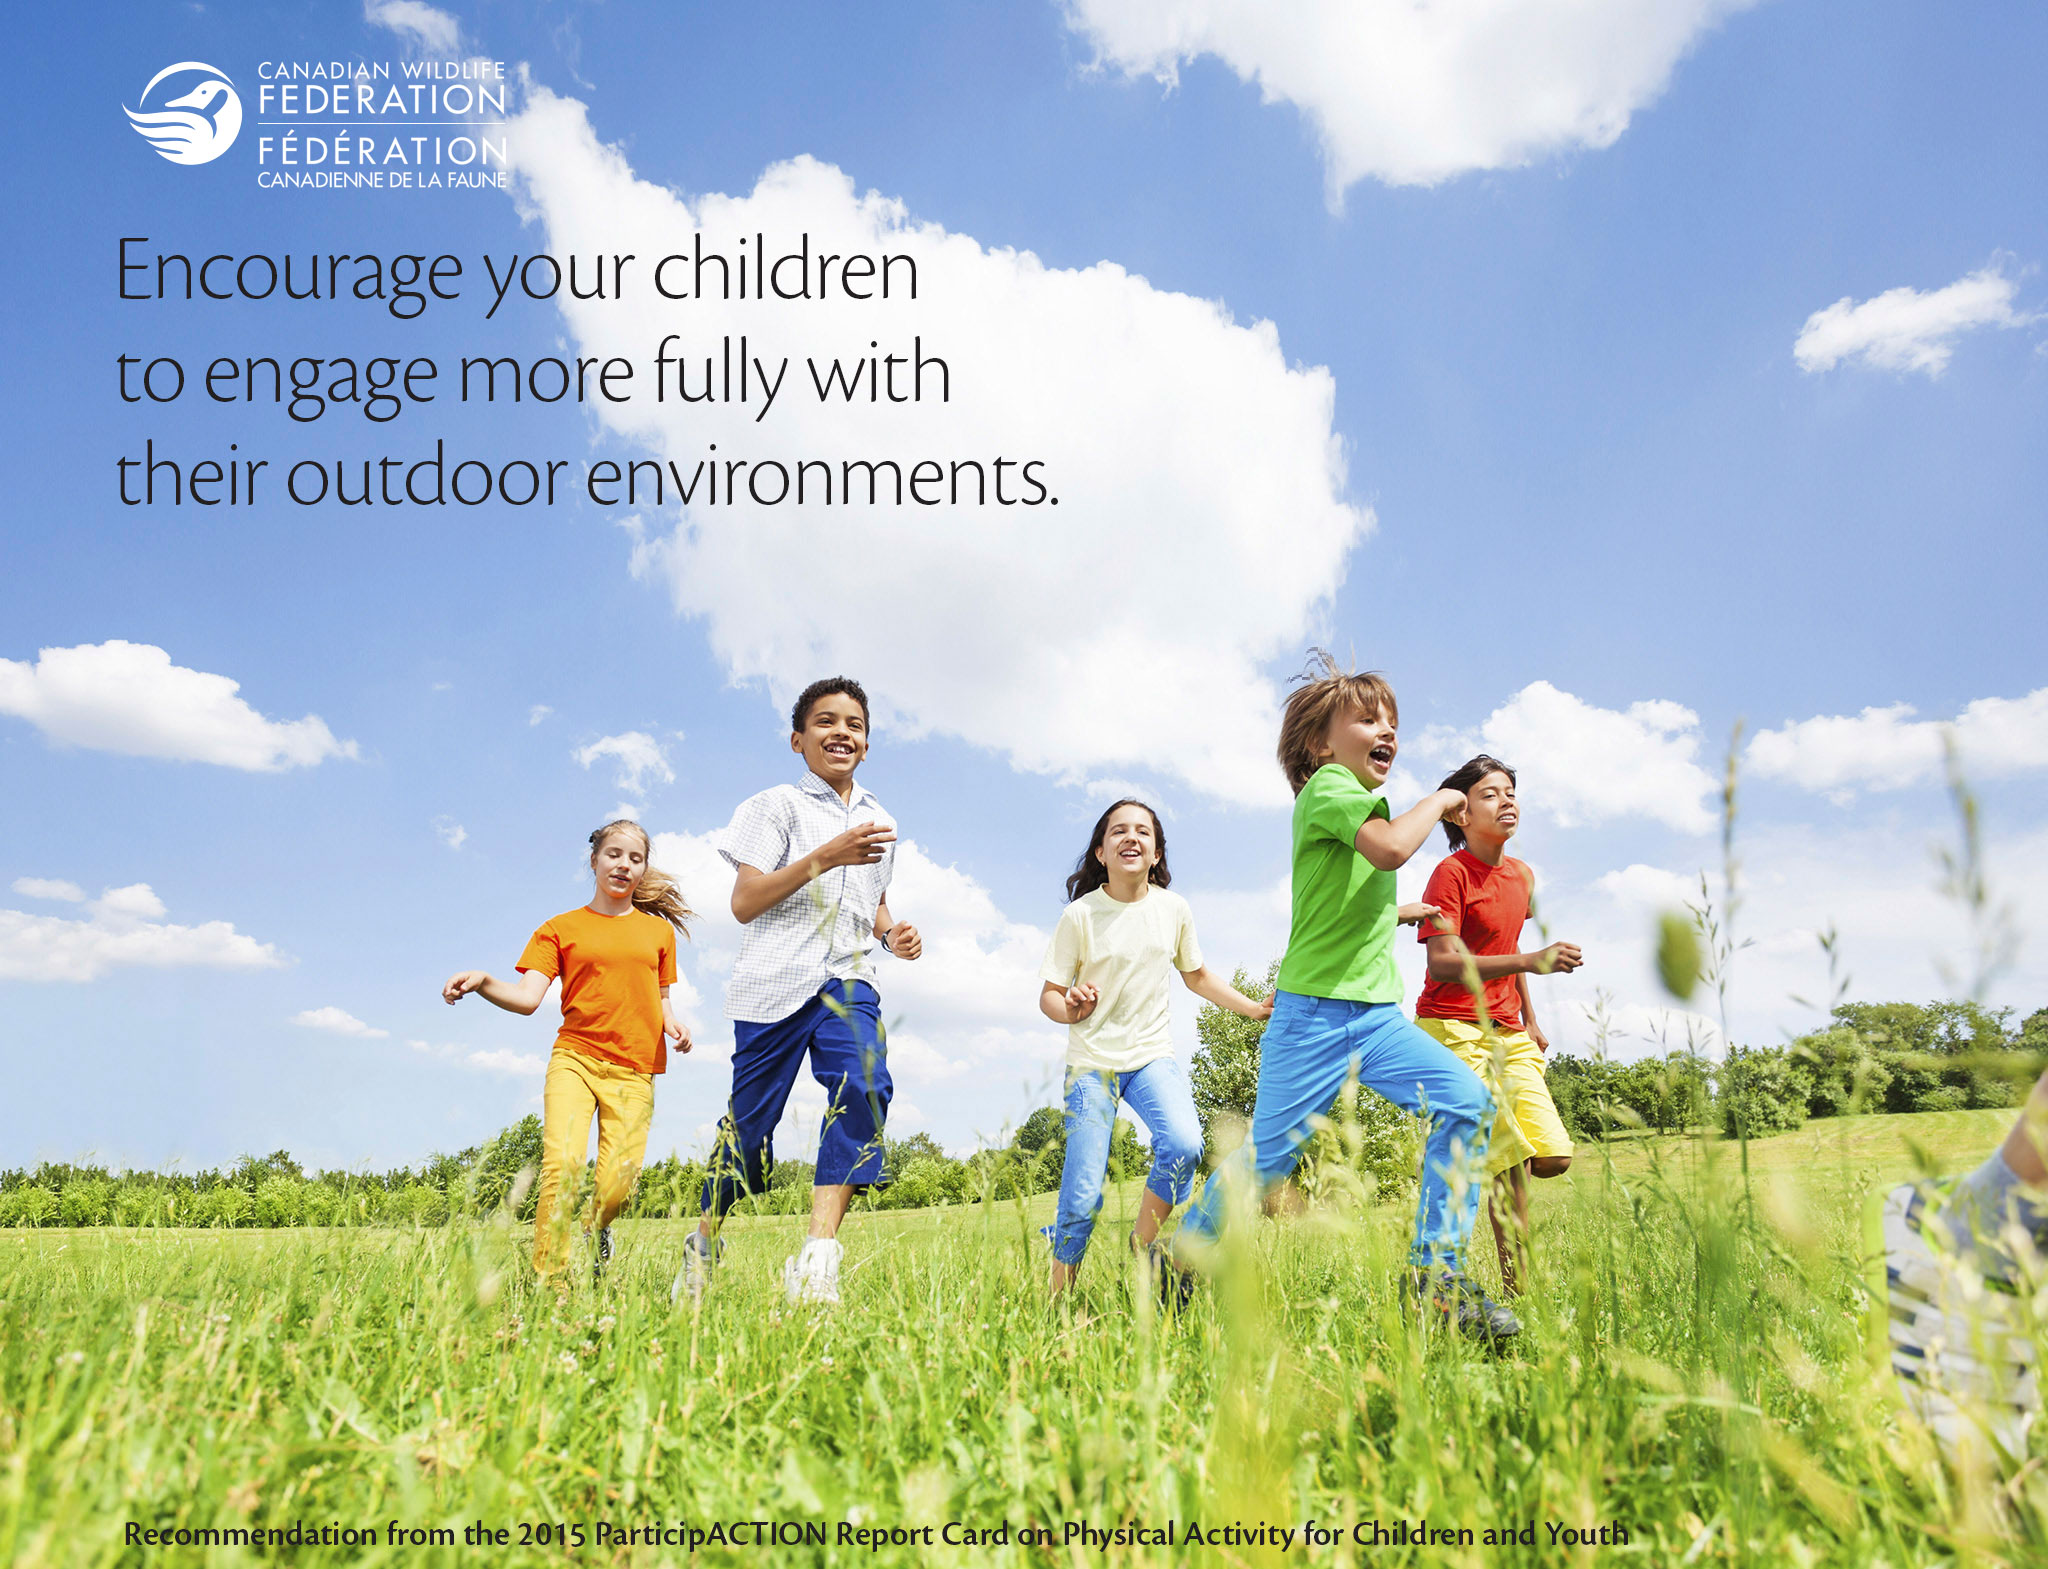 CWF meme with children running in a field